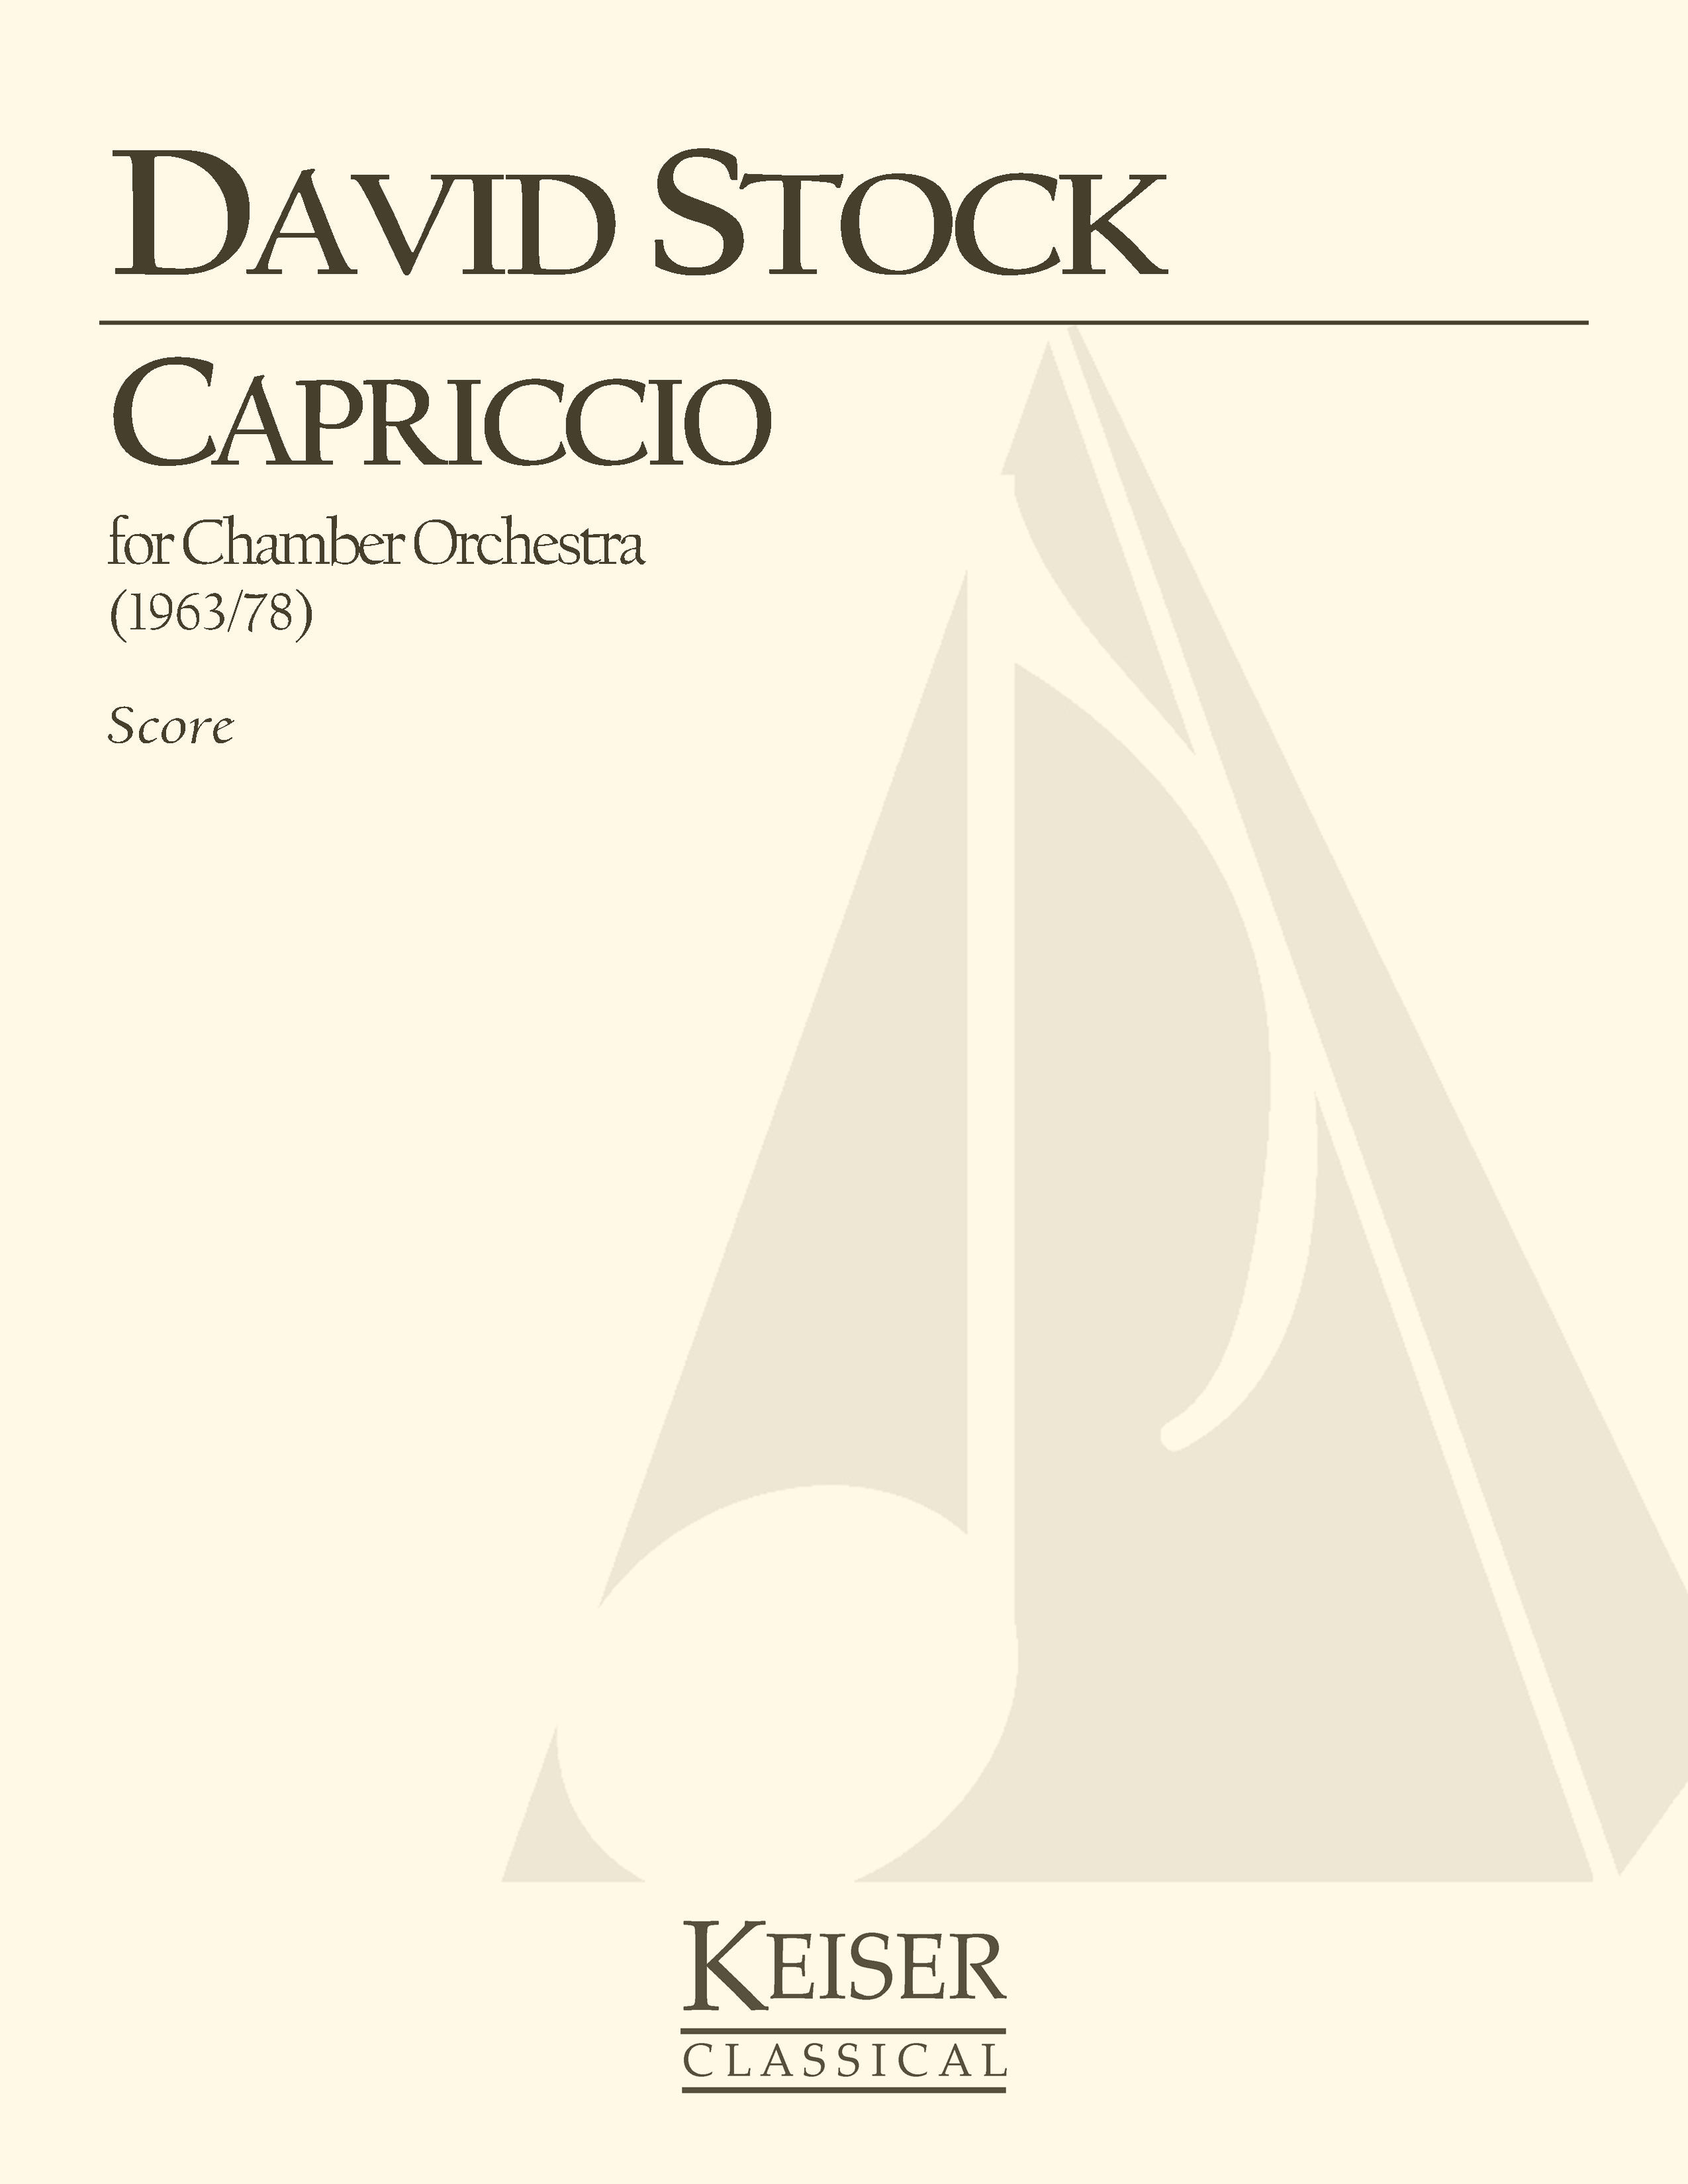 Capriccio For Small Orchestra (1963) - 1.1.1.1: 1.1.0.0: StrRent/Buy: Keiser Music